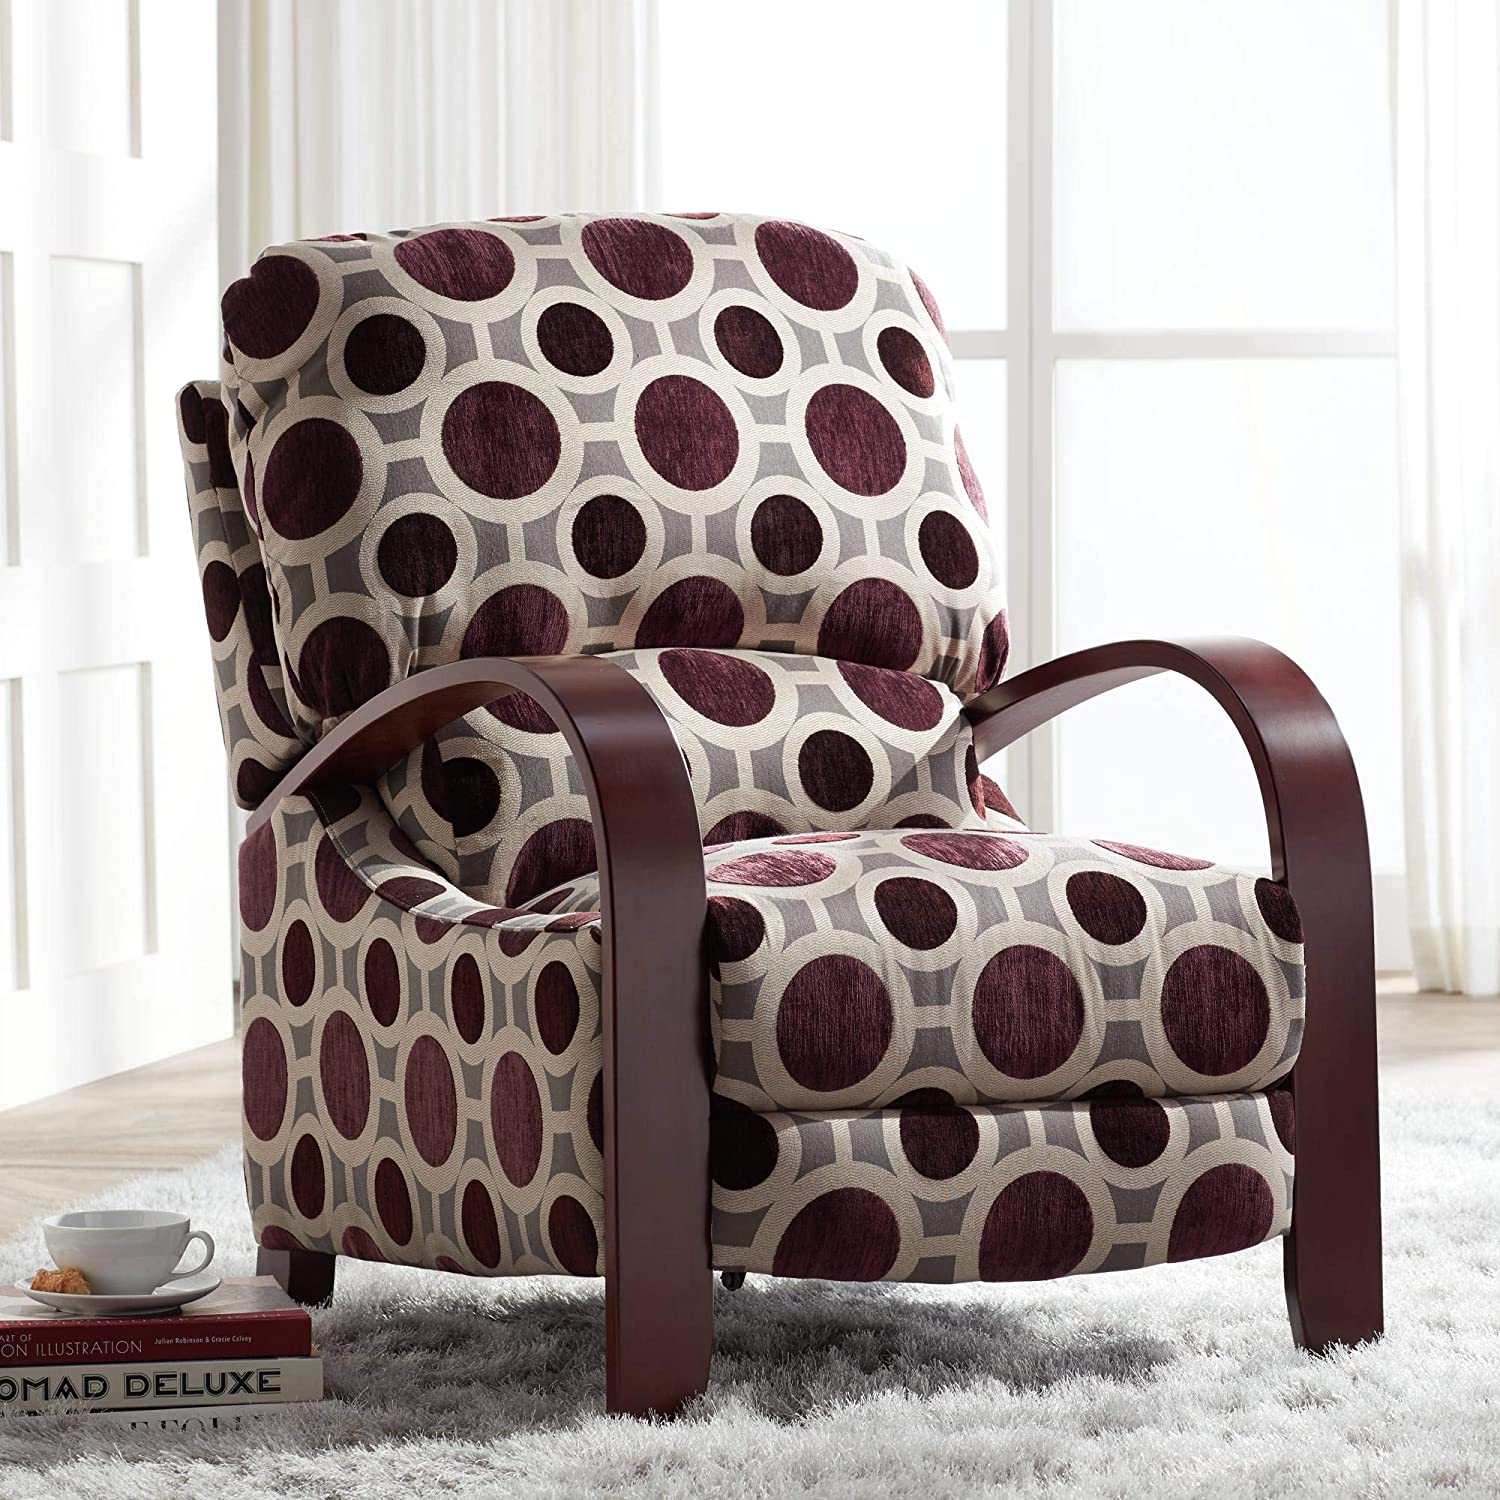 Cooper Conspiracy Mulberry 3-Way Recliner Chair - Elm Lane